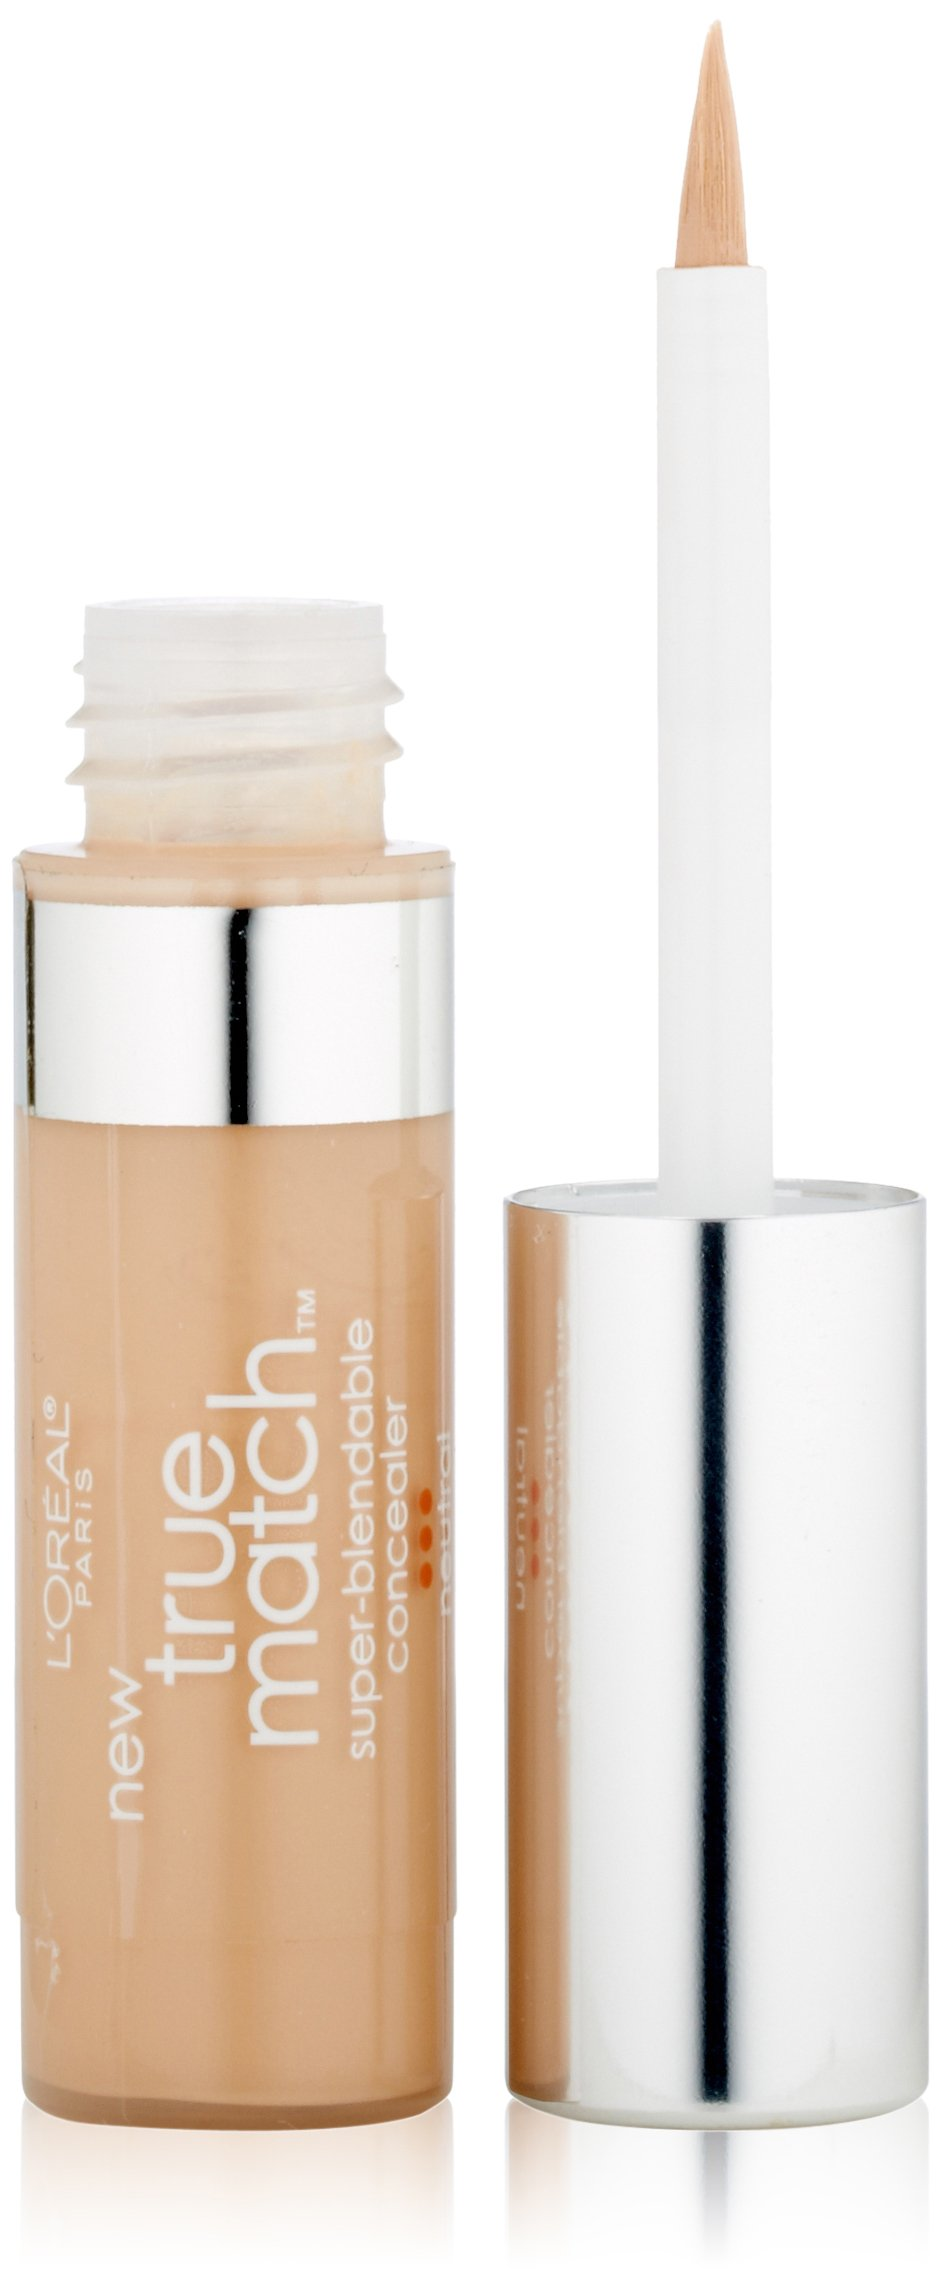 L'Oréal Paris True Match Super-Blendable Concealer, Neutral/Fair Light, 0.17 fl. oz.